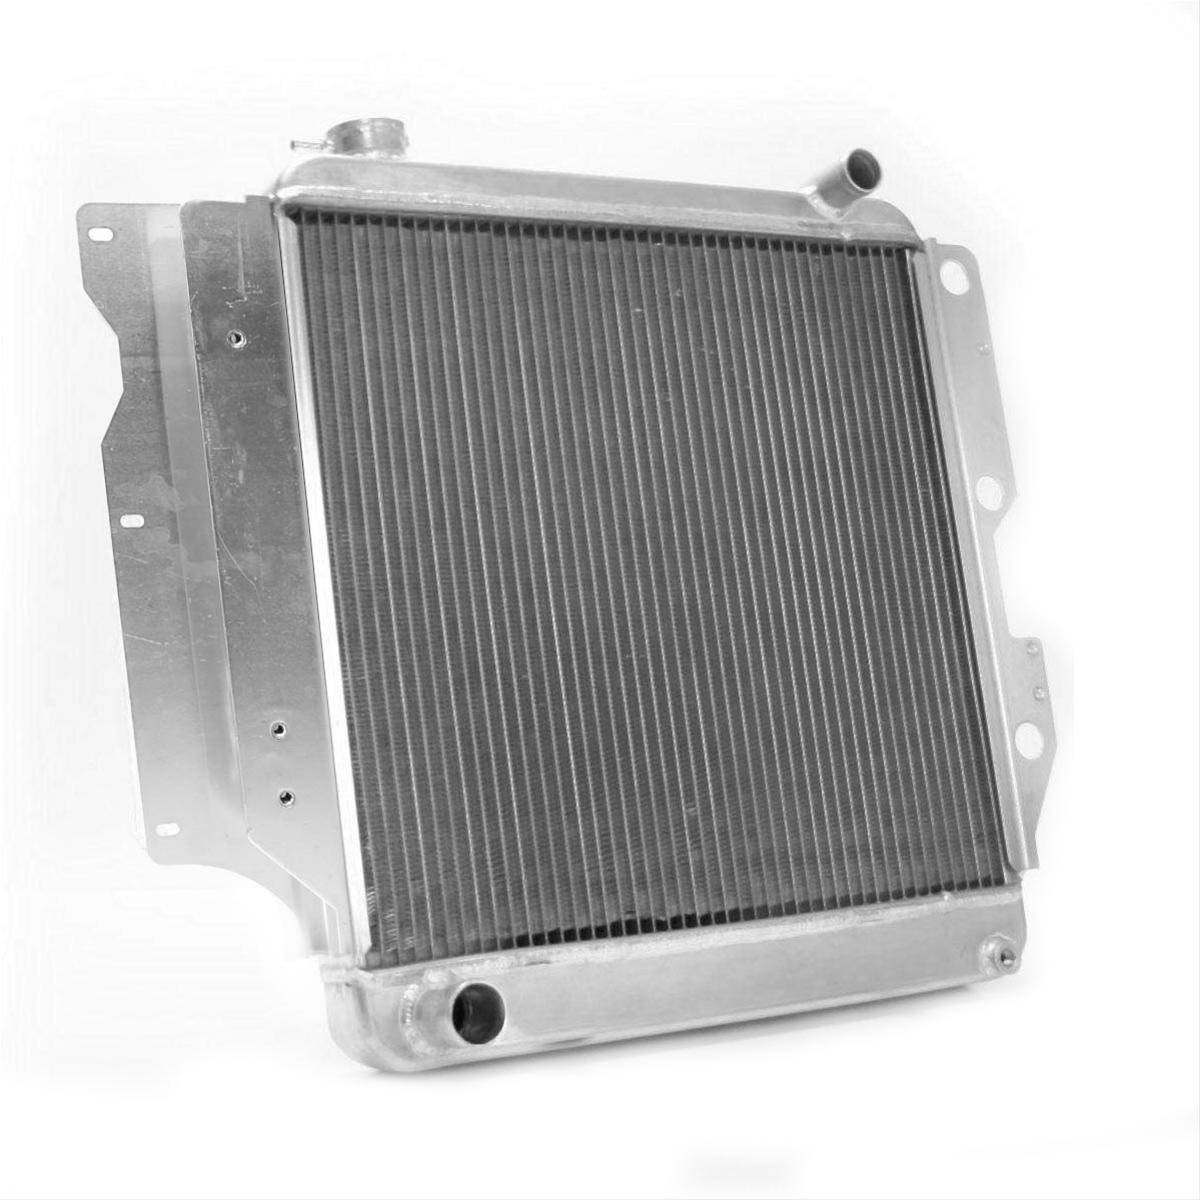 Rear view of the Griffin Heavy Duty Aluminum Jeep Radiator 1987 - 2006